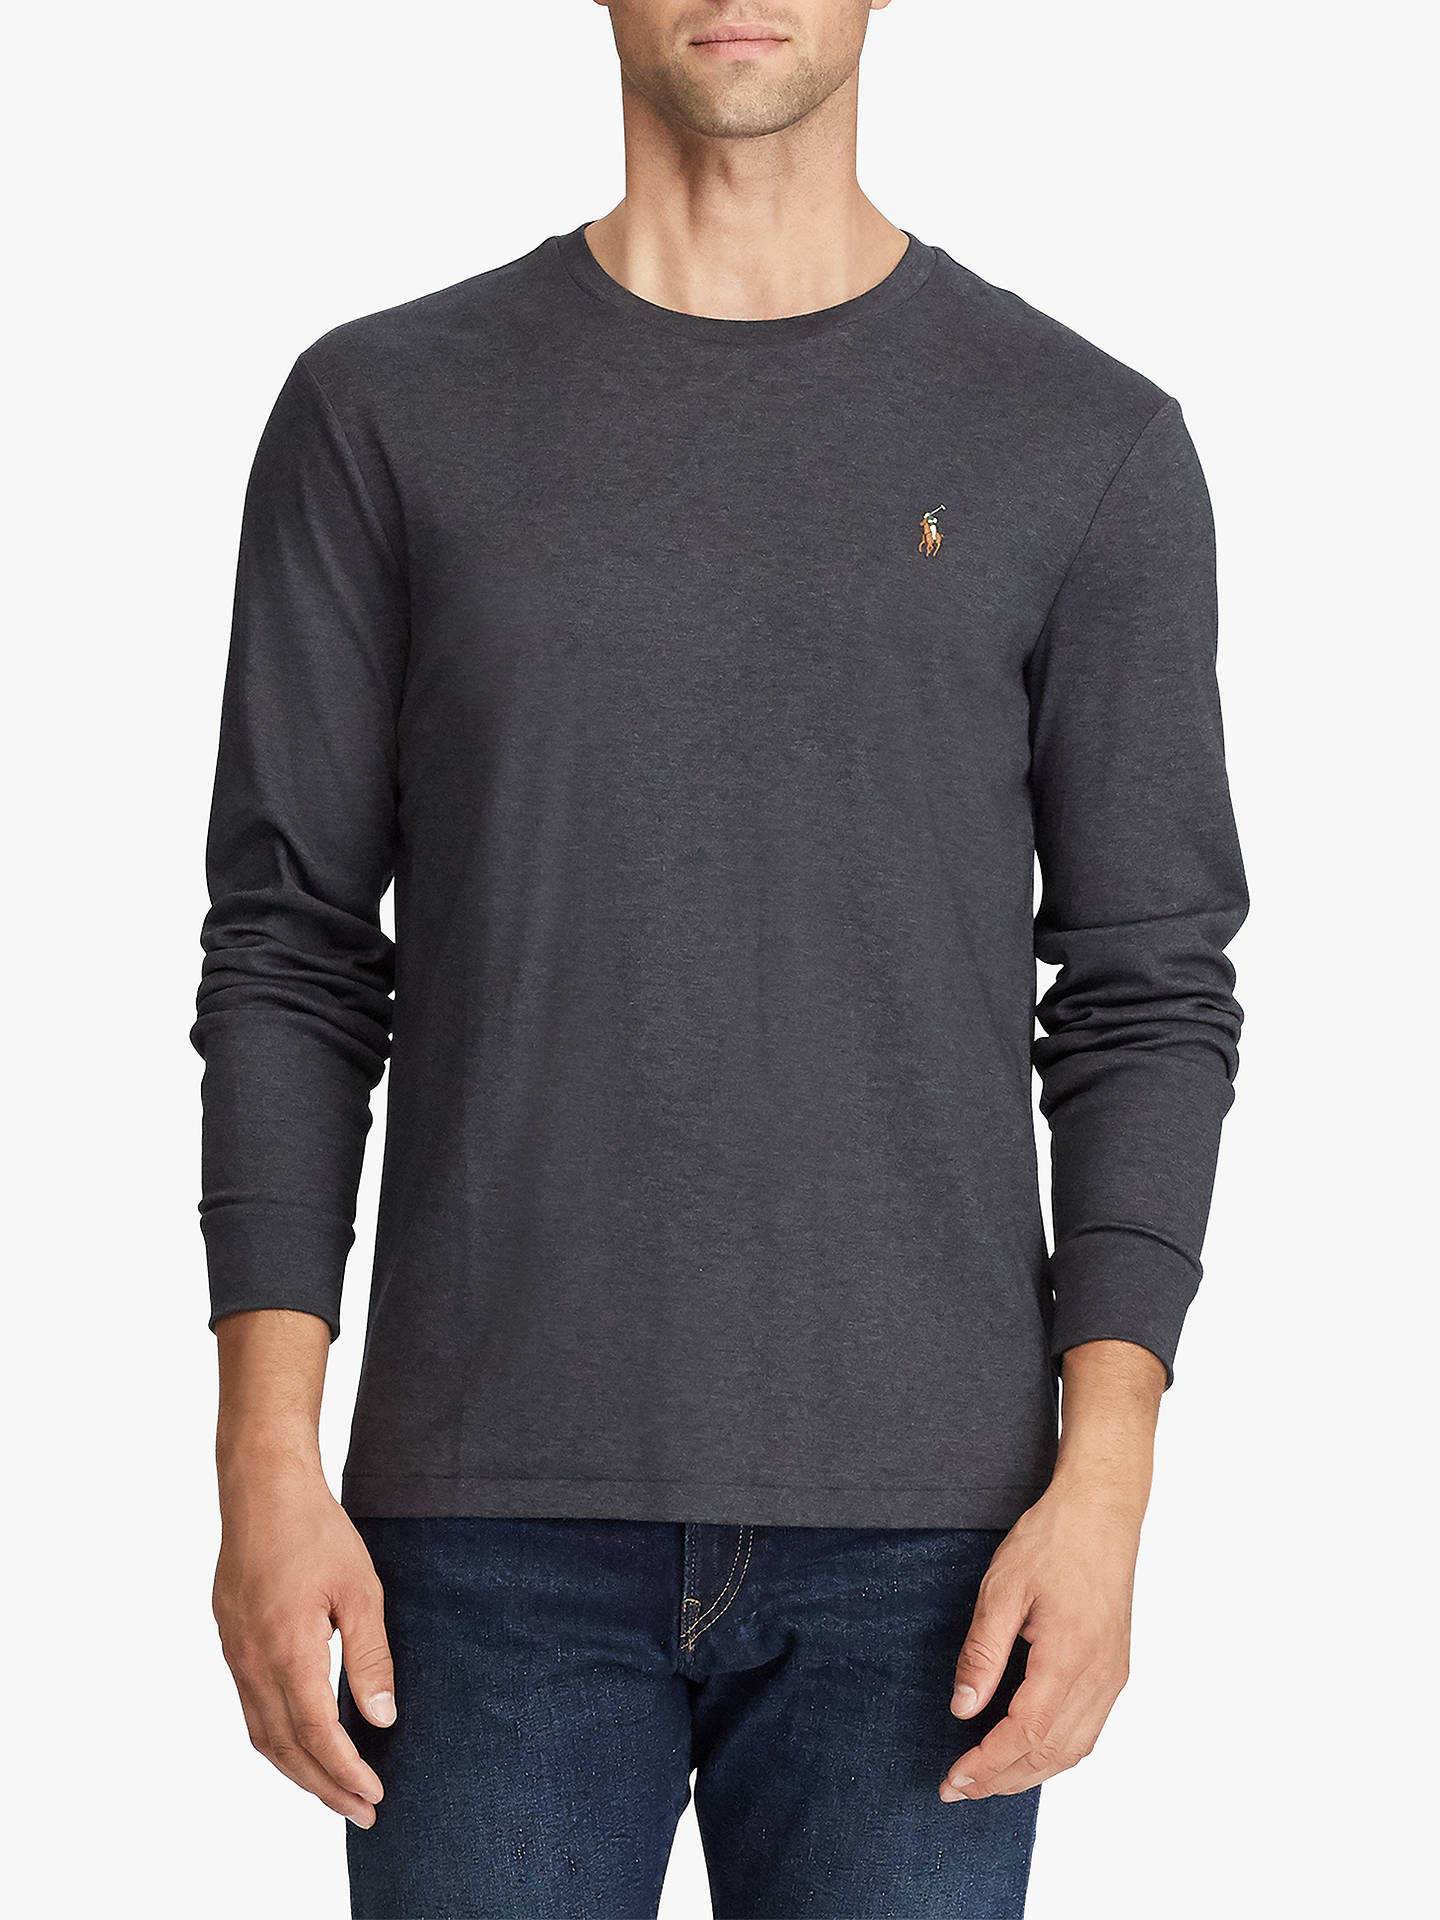 1bbb8590 Polo Ralph Lauren Long Sleeve T-Shirt, Dark Grey Heather